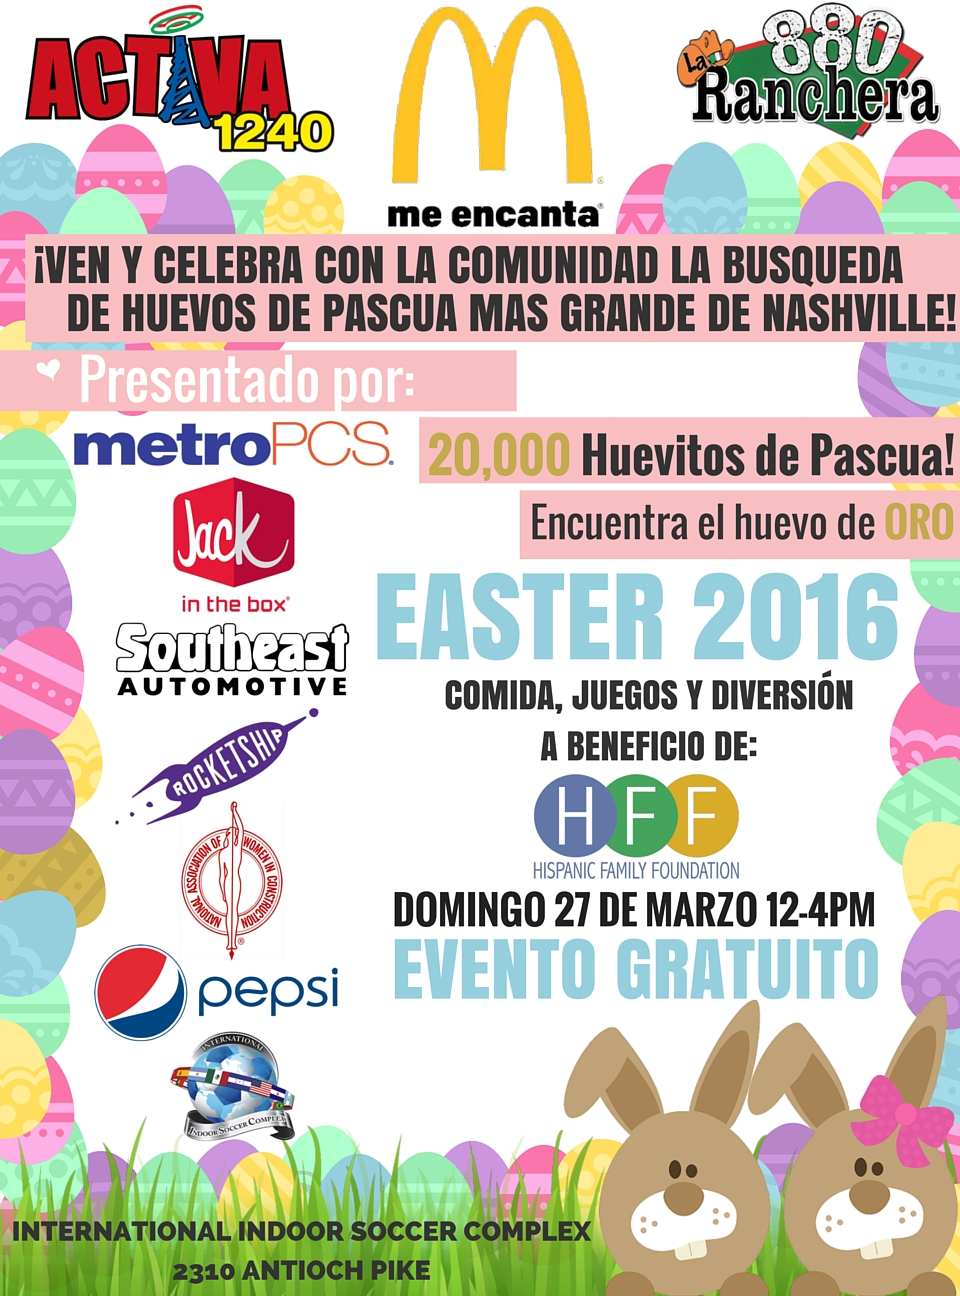 Easter 2016 Activa 1240